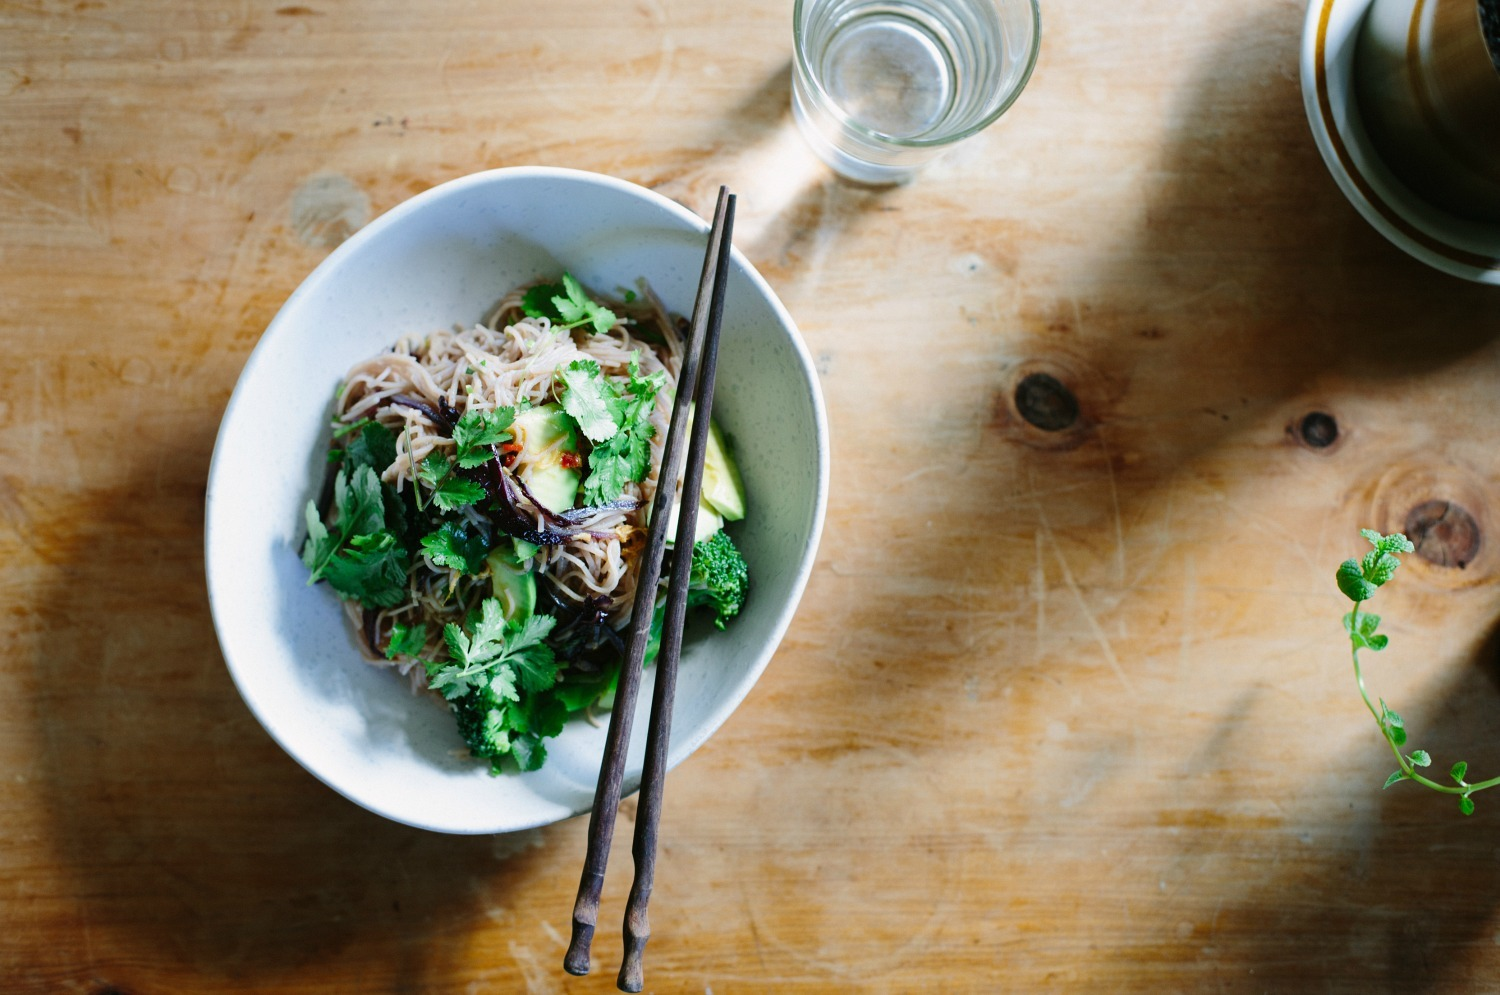 Red rice noodle salad with avocado, broccoli + soy ginger dressing